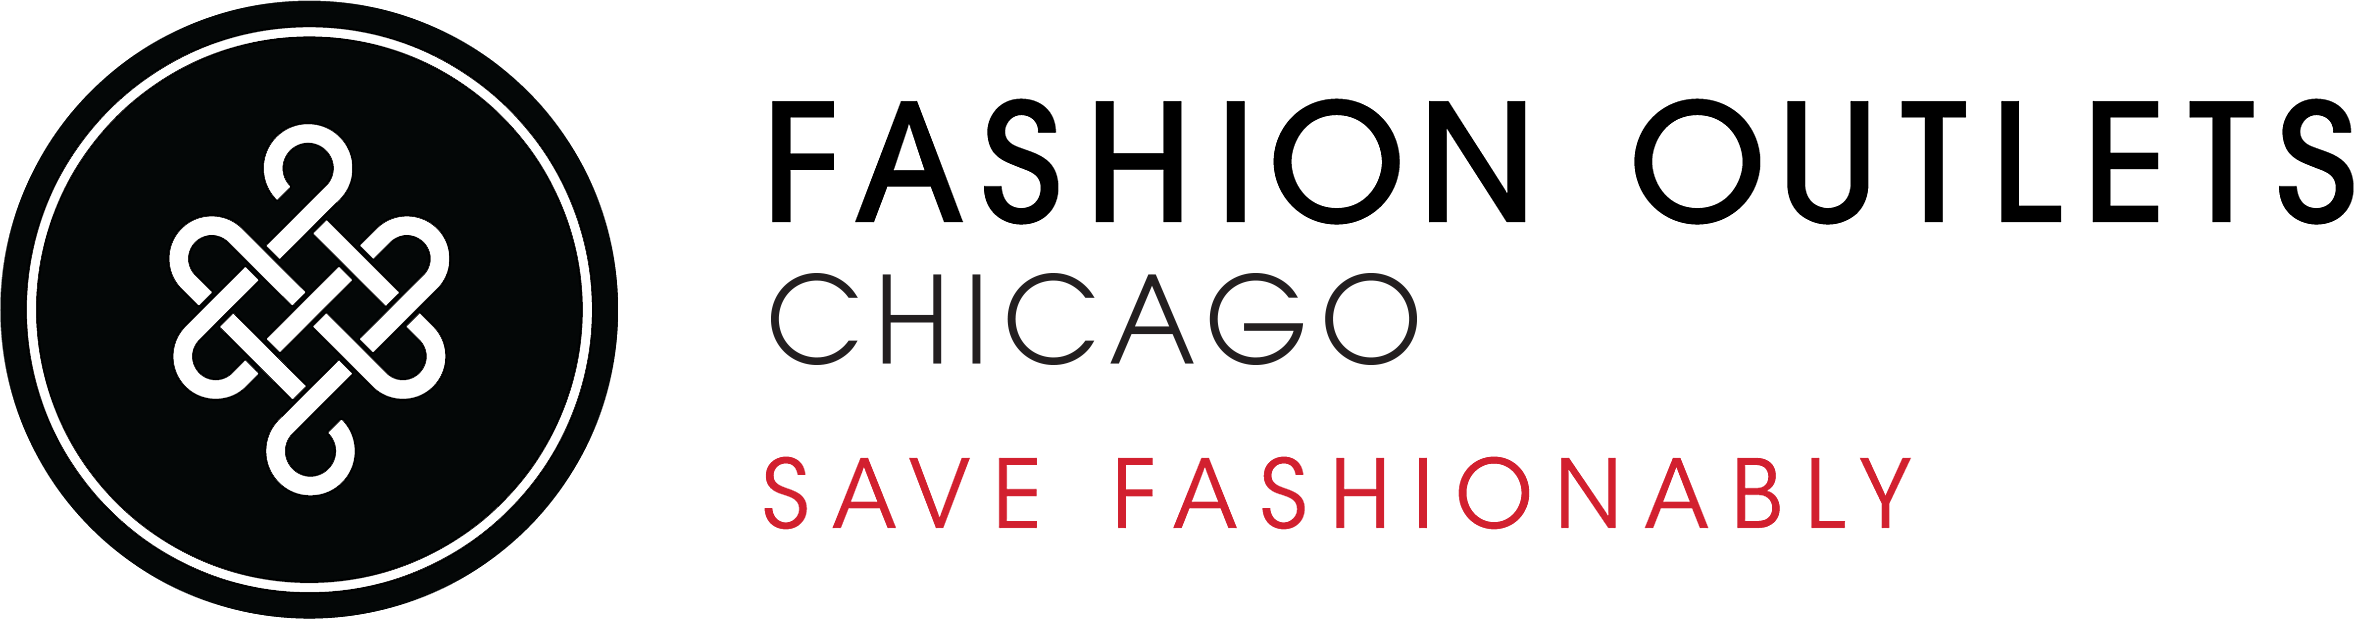 Fashion Outlets Chicago Save Fashionably